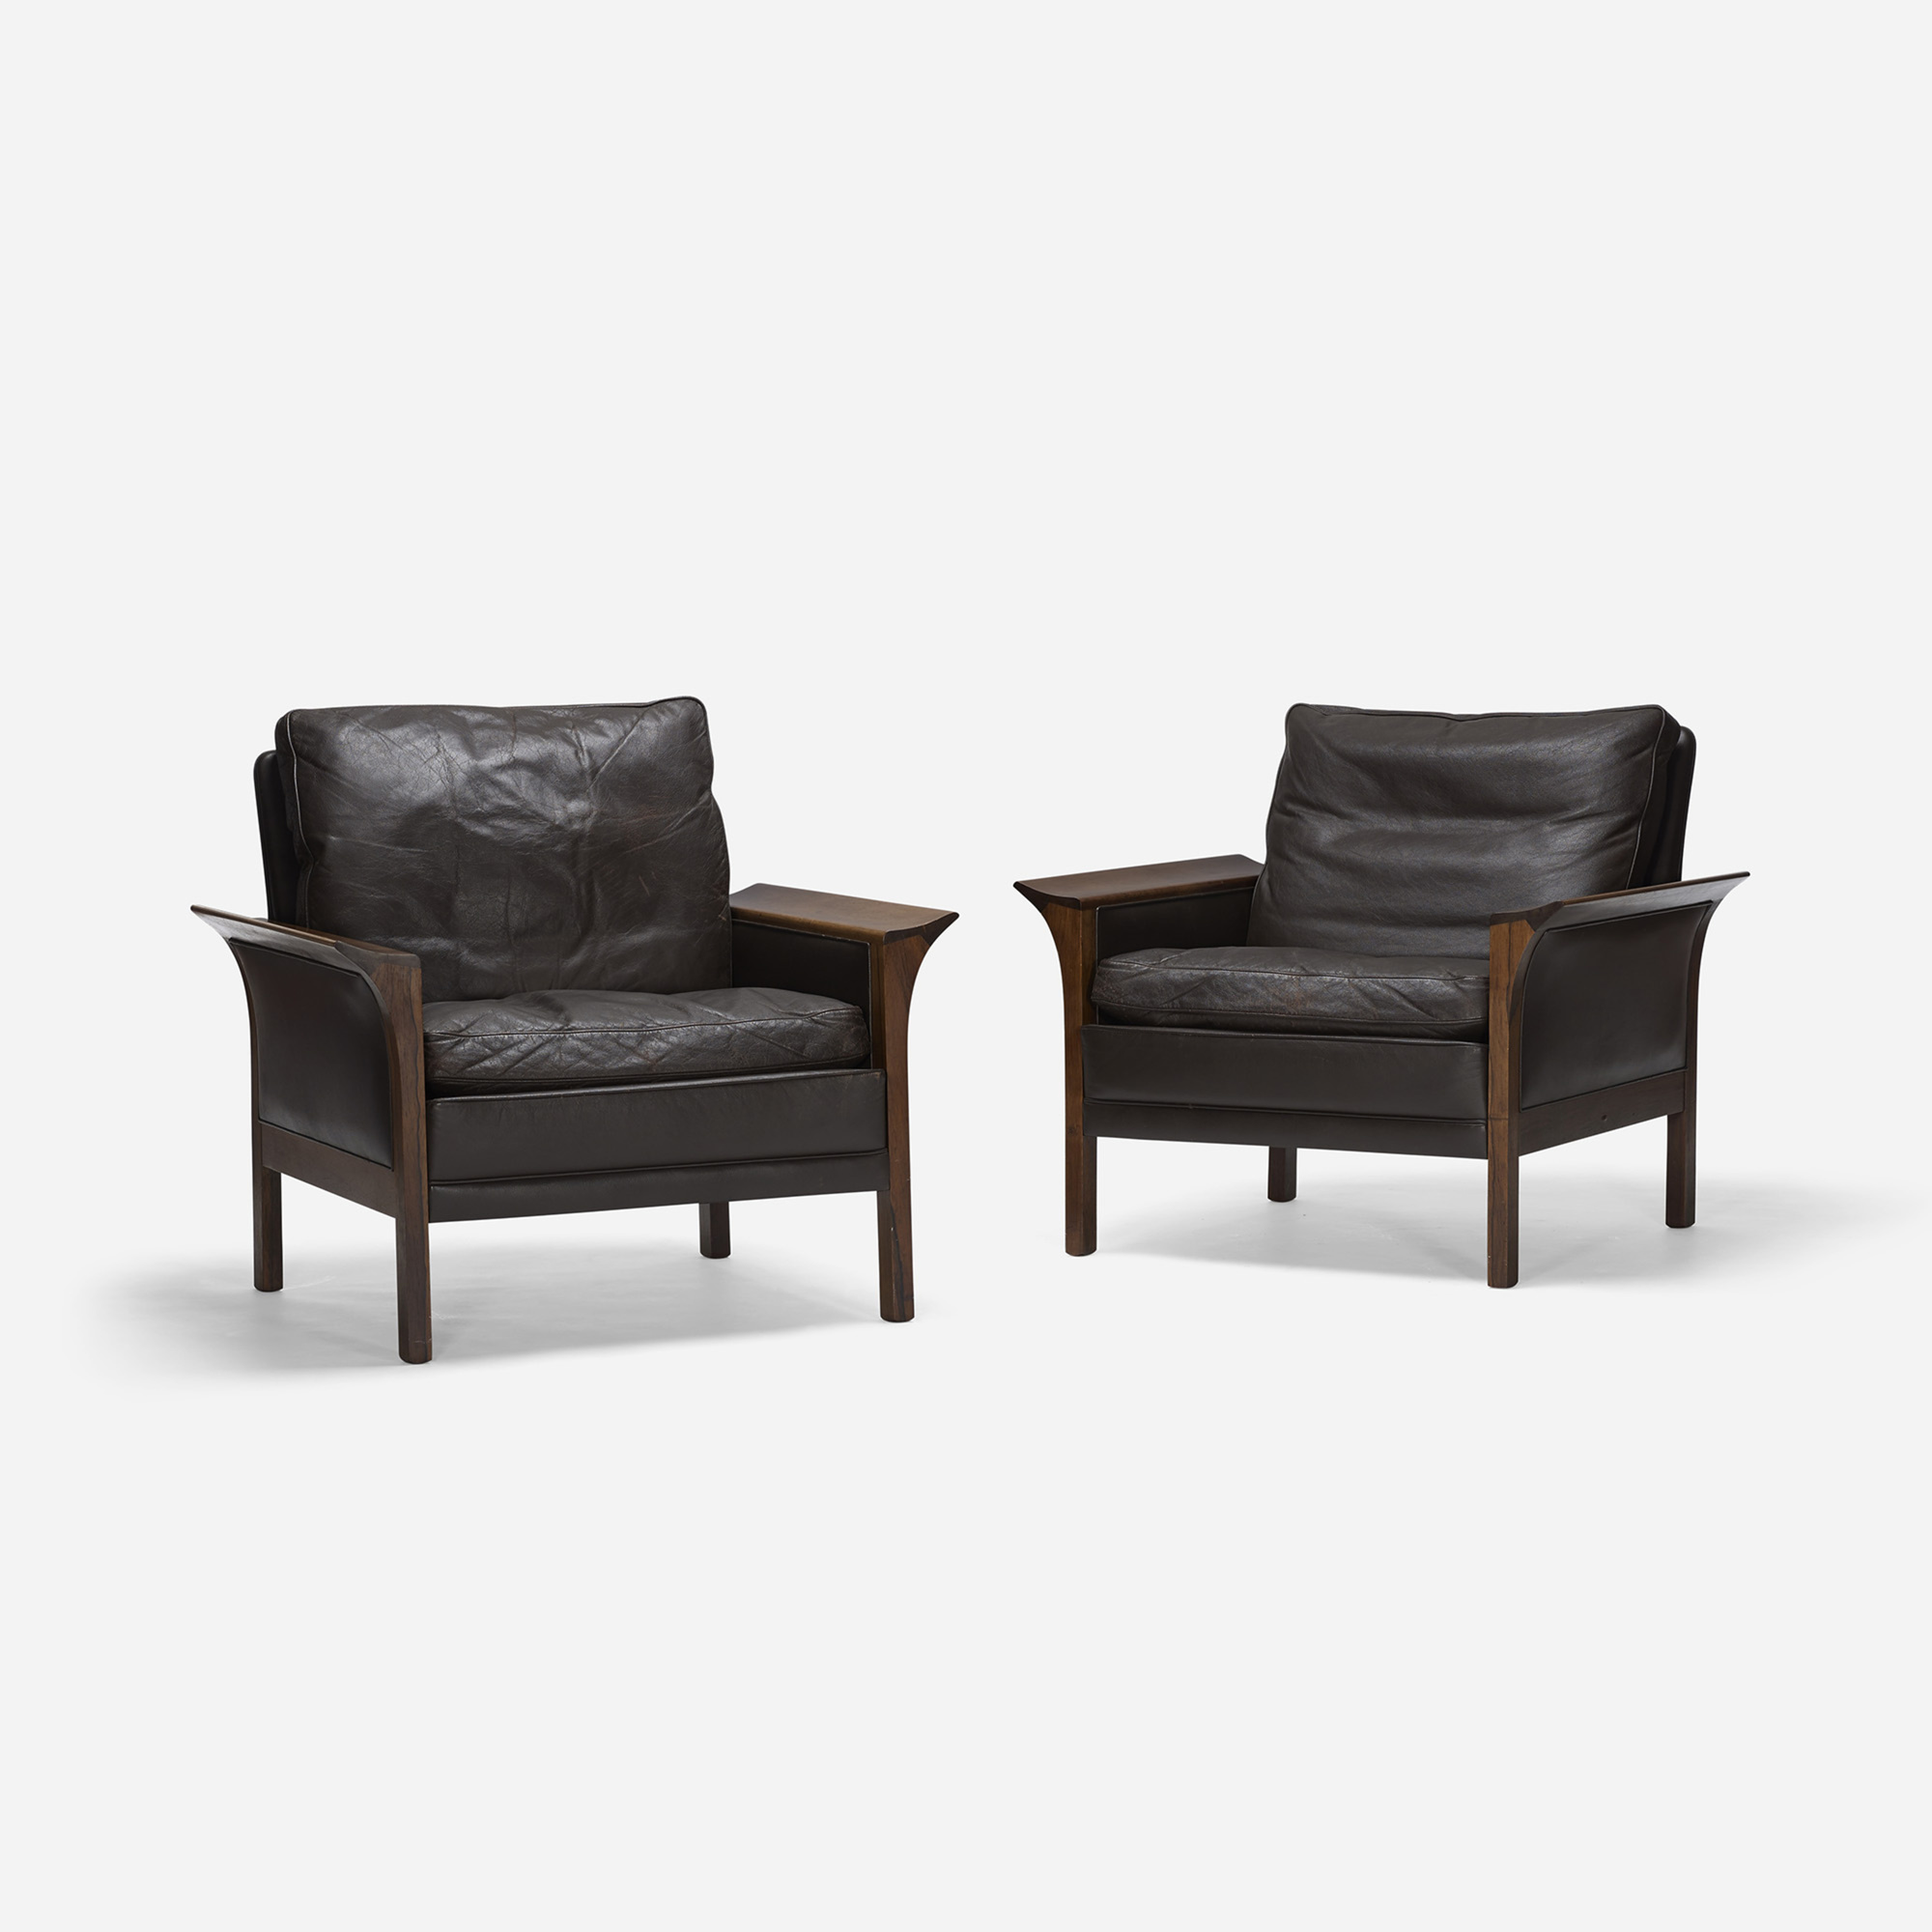 643: Hans Olsen / lounge chairs model 400, pair (1 of 3)